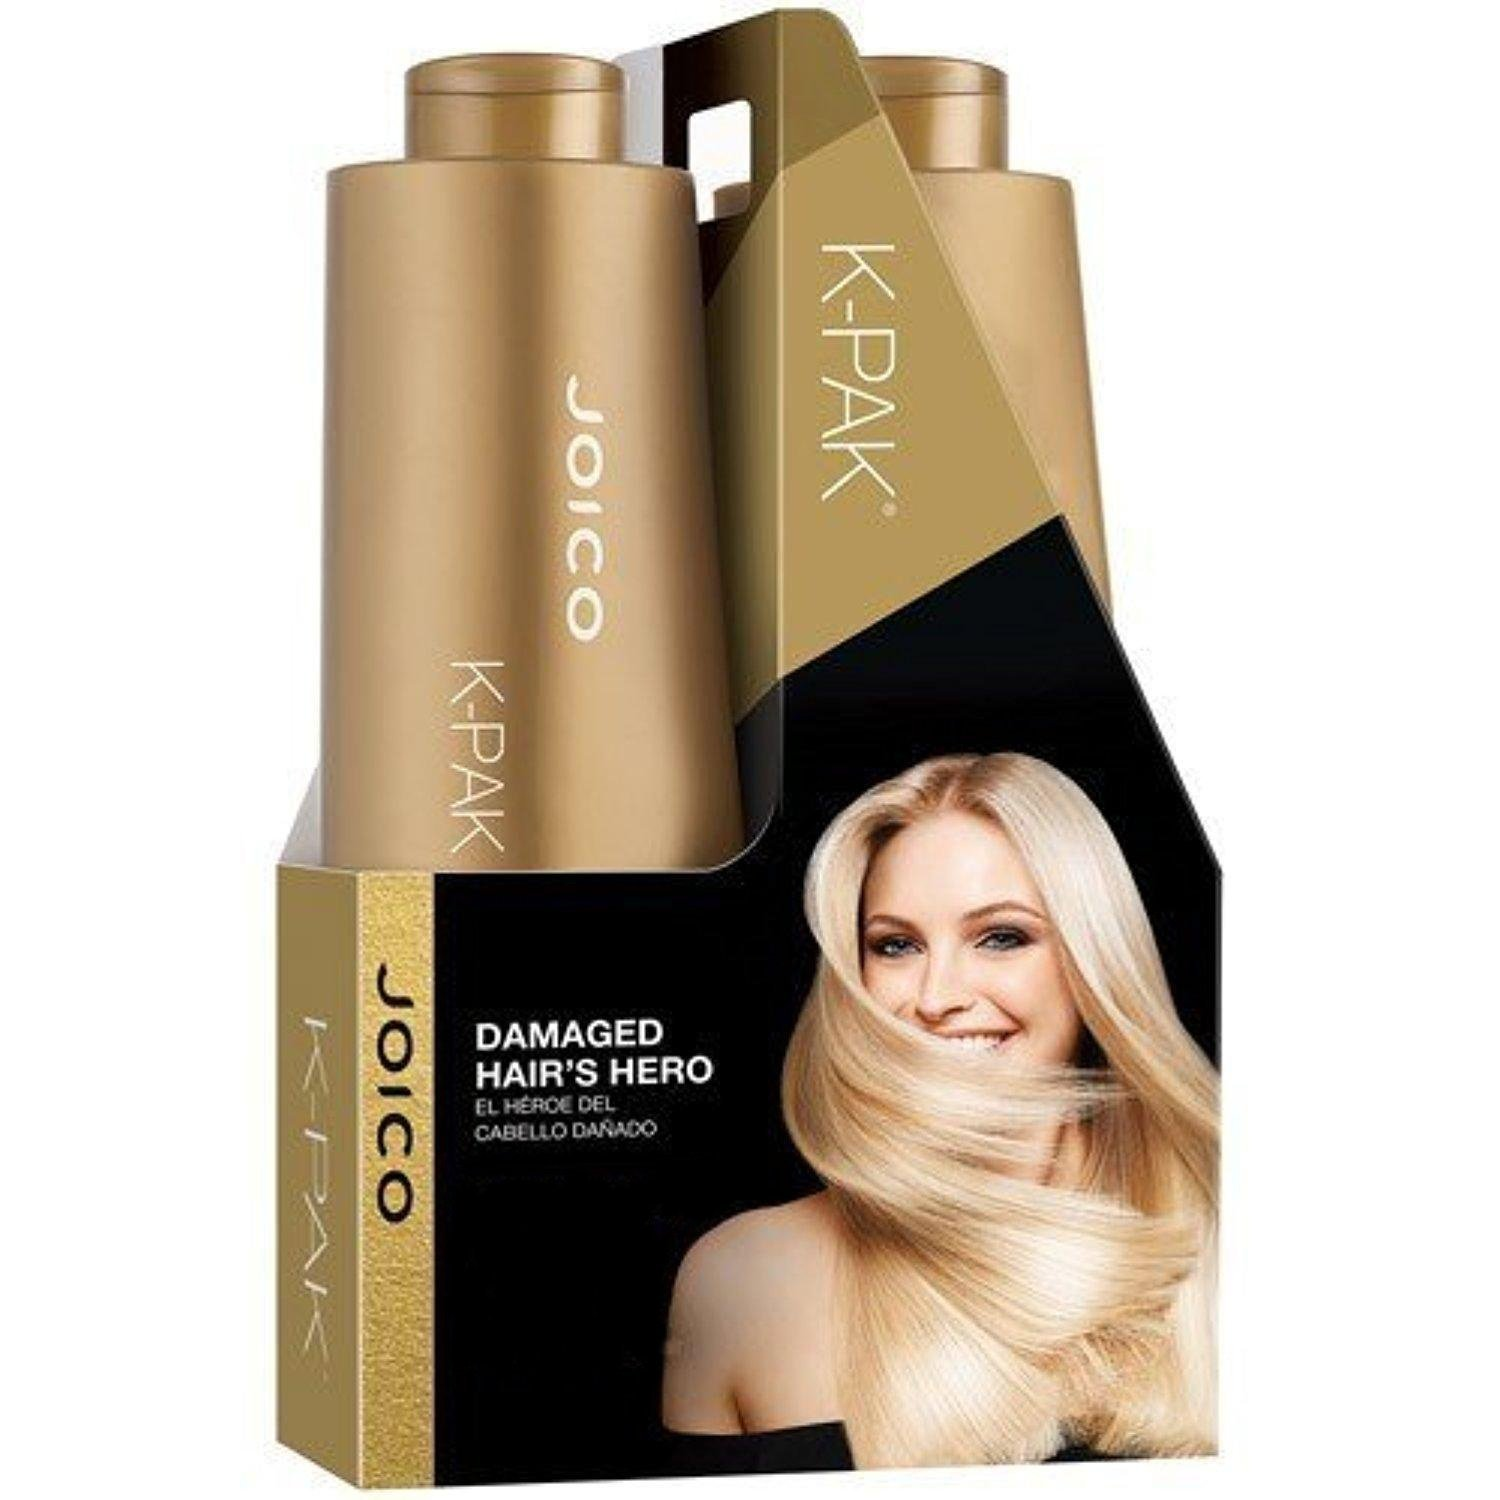 Joico K-Pak Shampoo and Conditioner Liter Duo Set, 33.8 oz by Joico